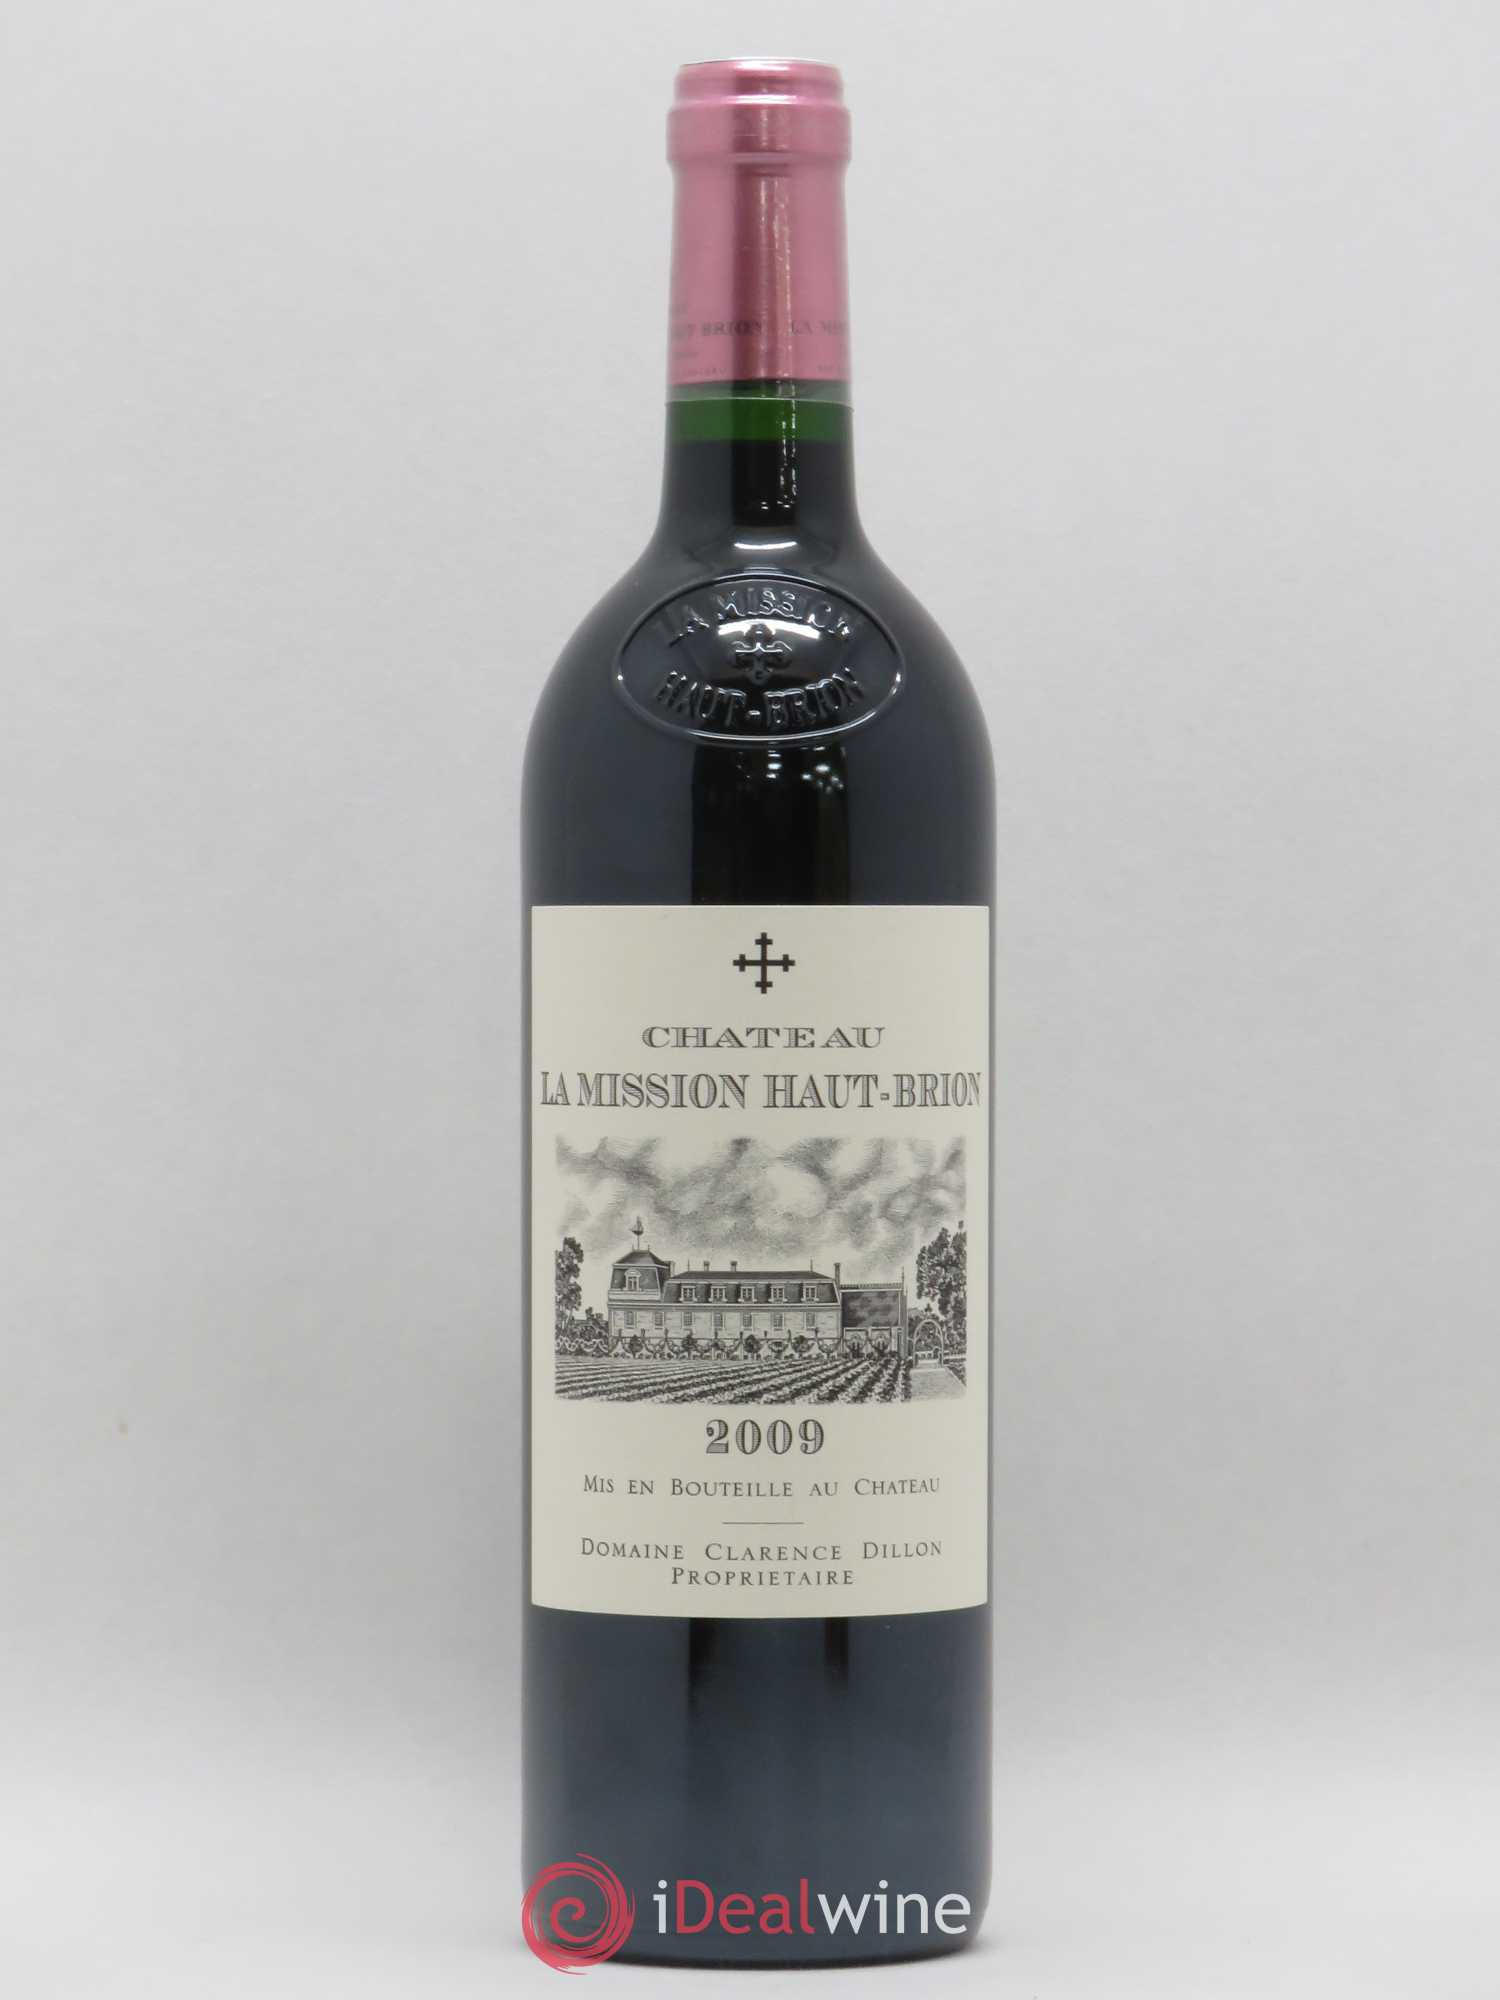 Château La Mission Haut-Brion Cru Classé de Graves  2009 - Lot of 1 Bottle